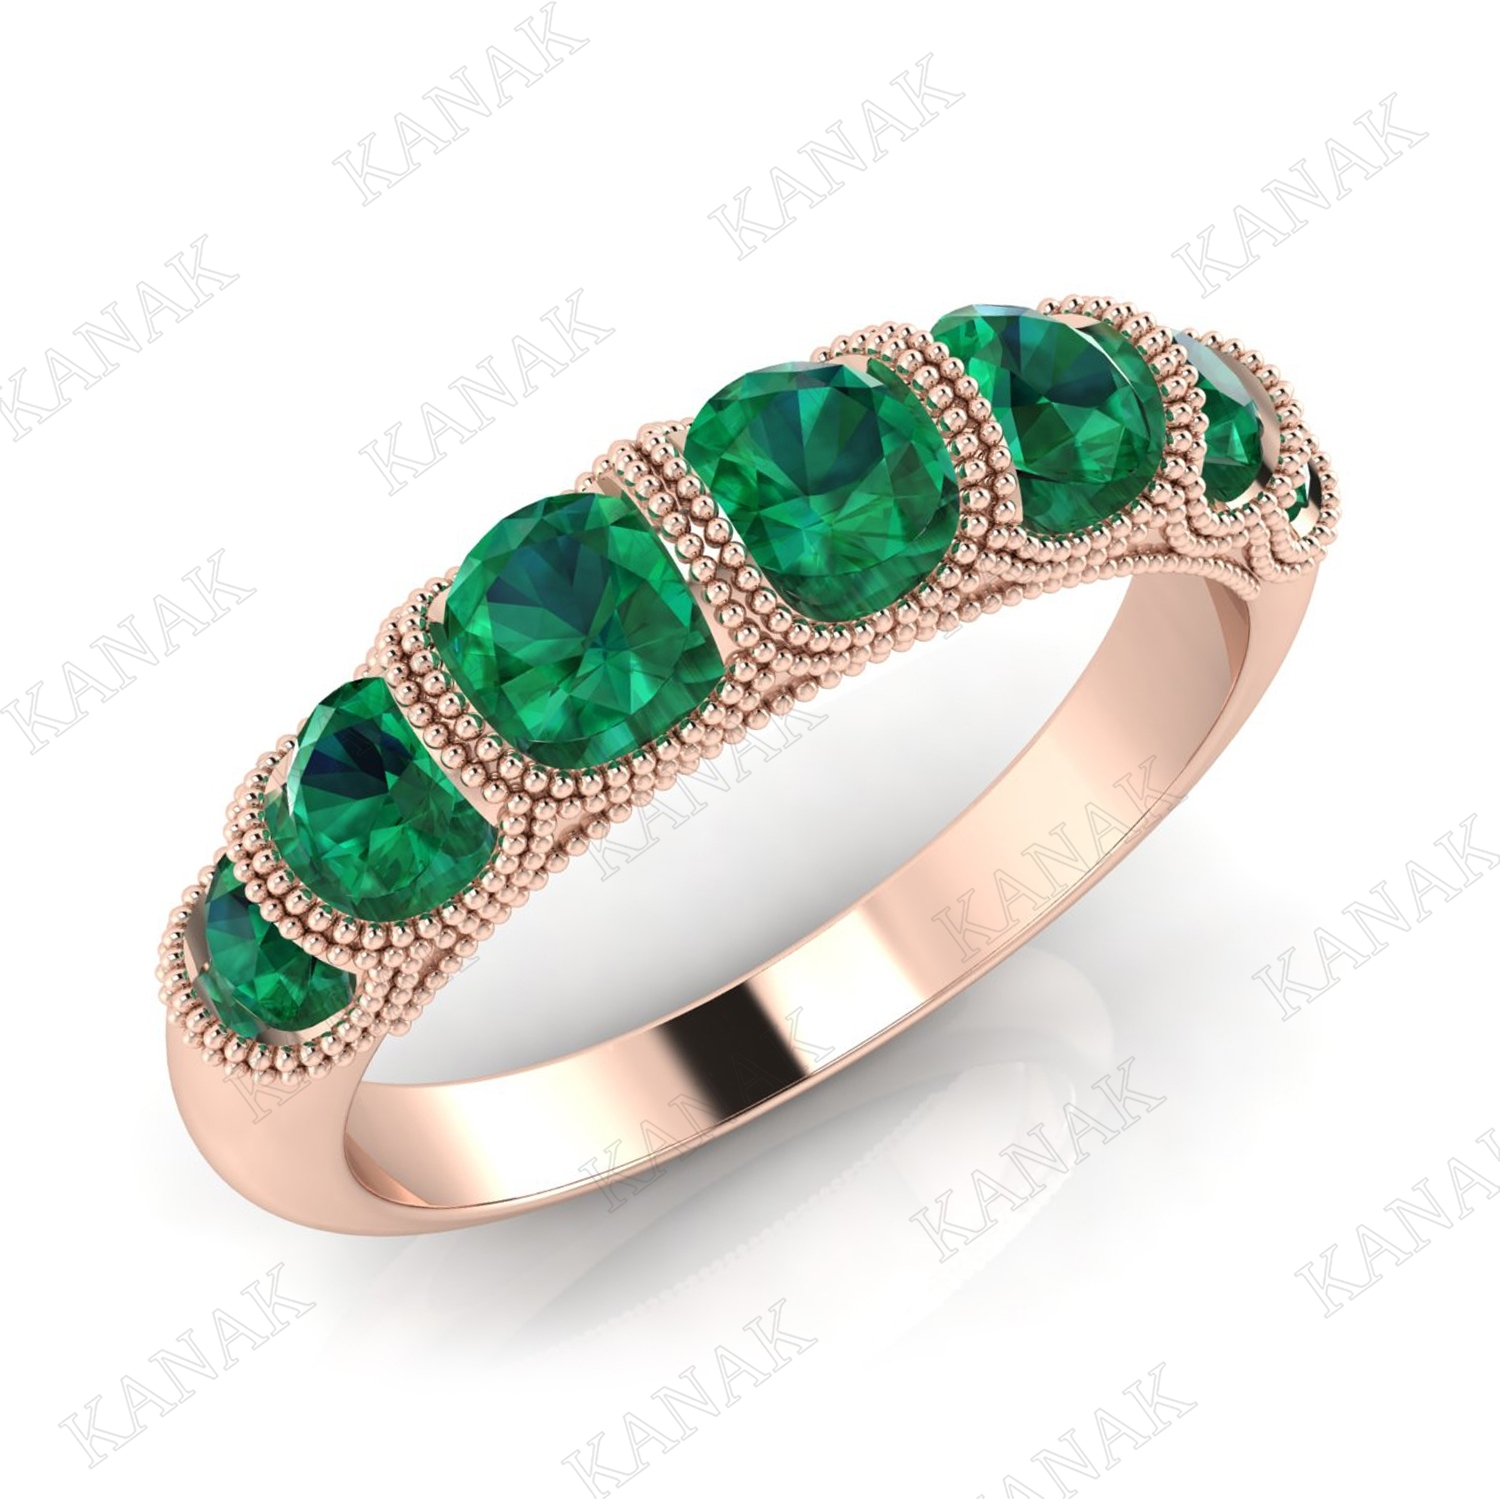 1 Ct Natural Emerald 14K Rose Gold Seven Stone Wedding Band Ring For With Most Up To Date Emerald And Diamond Seven Stone Wedding Bands In 14K Gold (View 1 of 15)